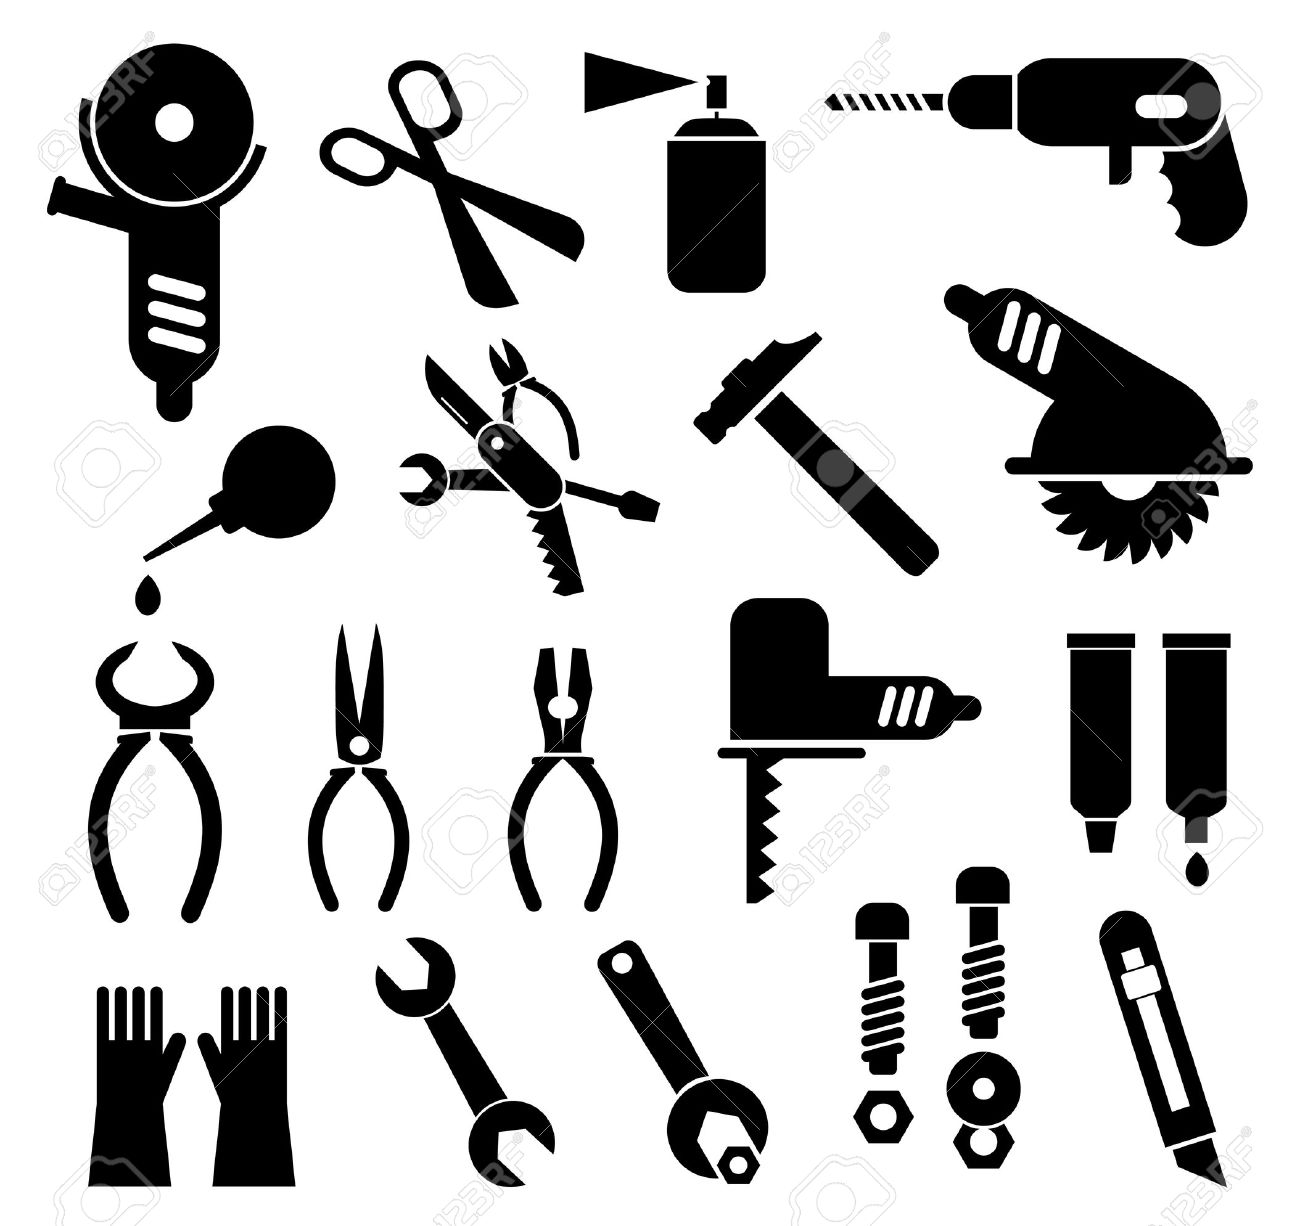 Vector Tool Pictograms Stock Vector - Image: 39269192